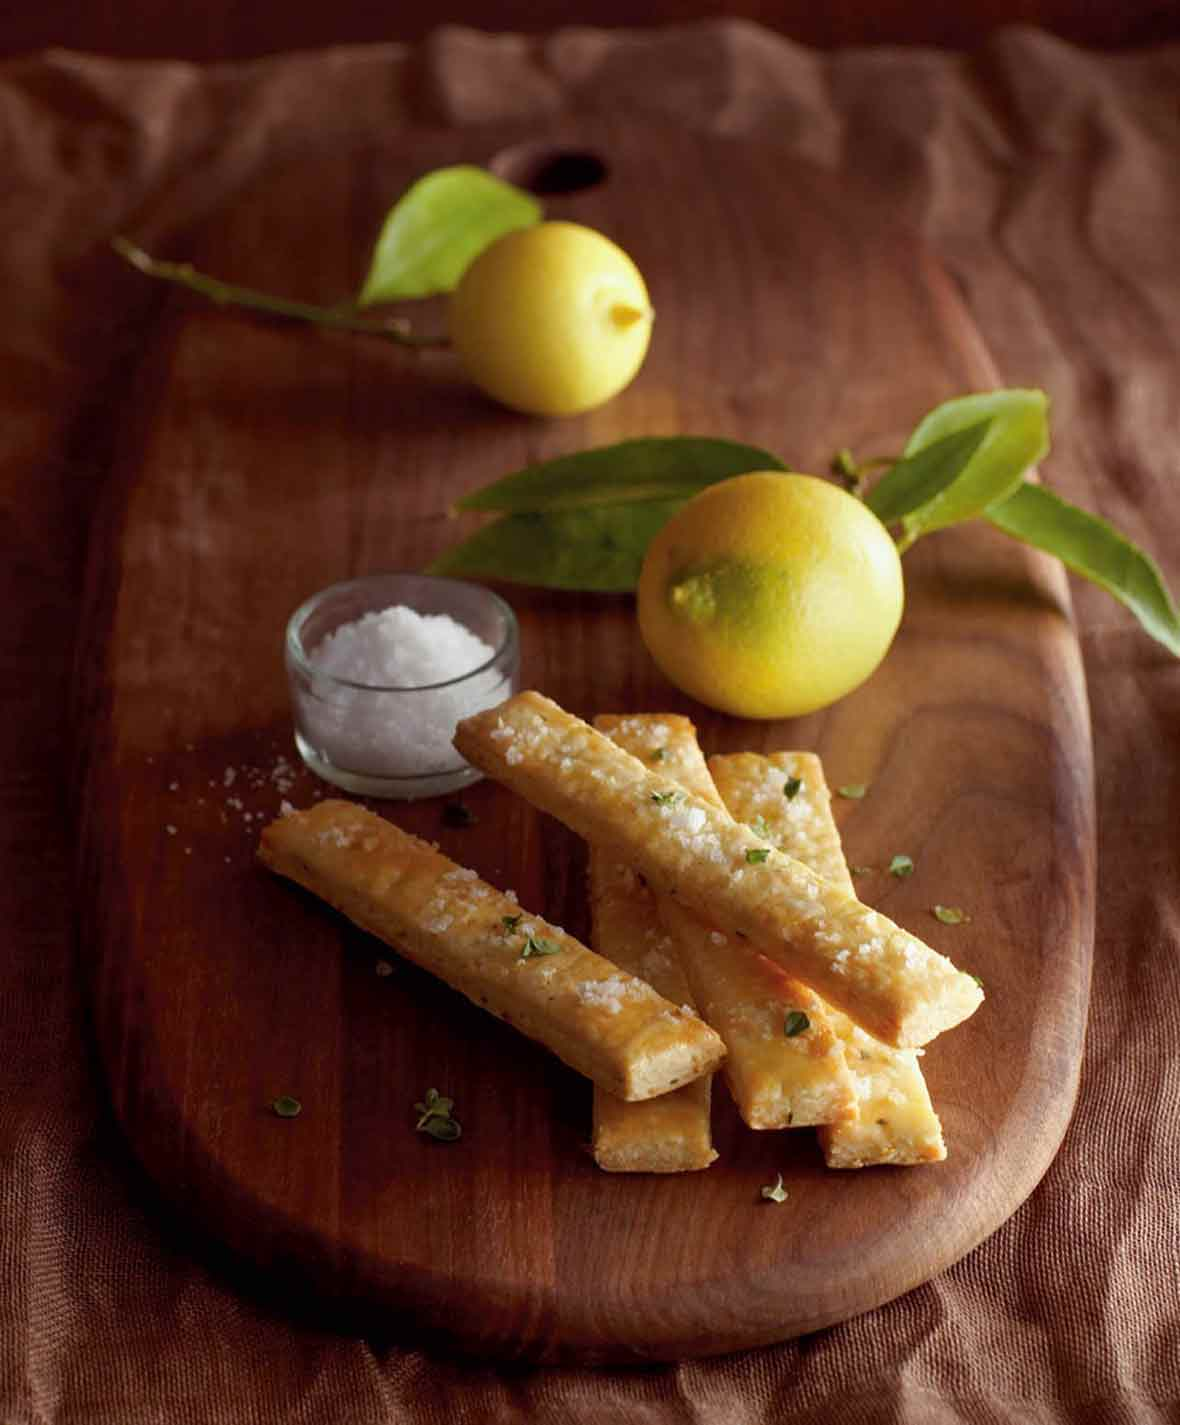 A stack of five lemon, thyme, and sea-salt shortbreads on a wooden board with a dish of sea salt and a lemon beside them.